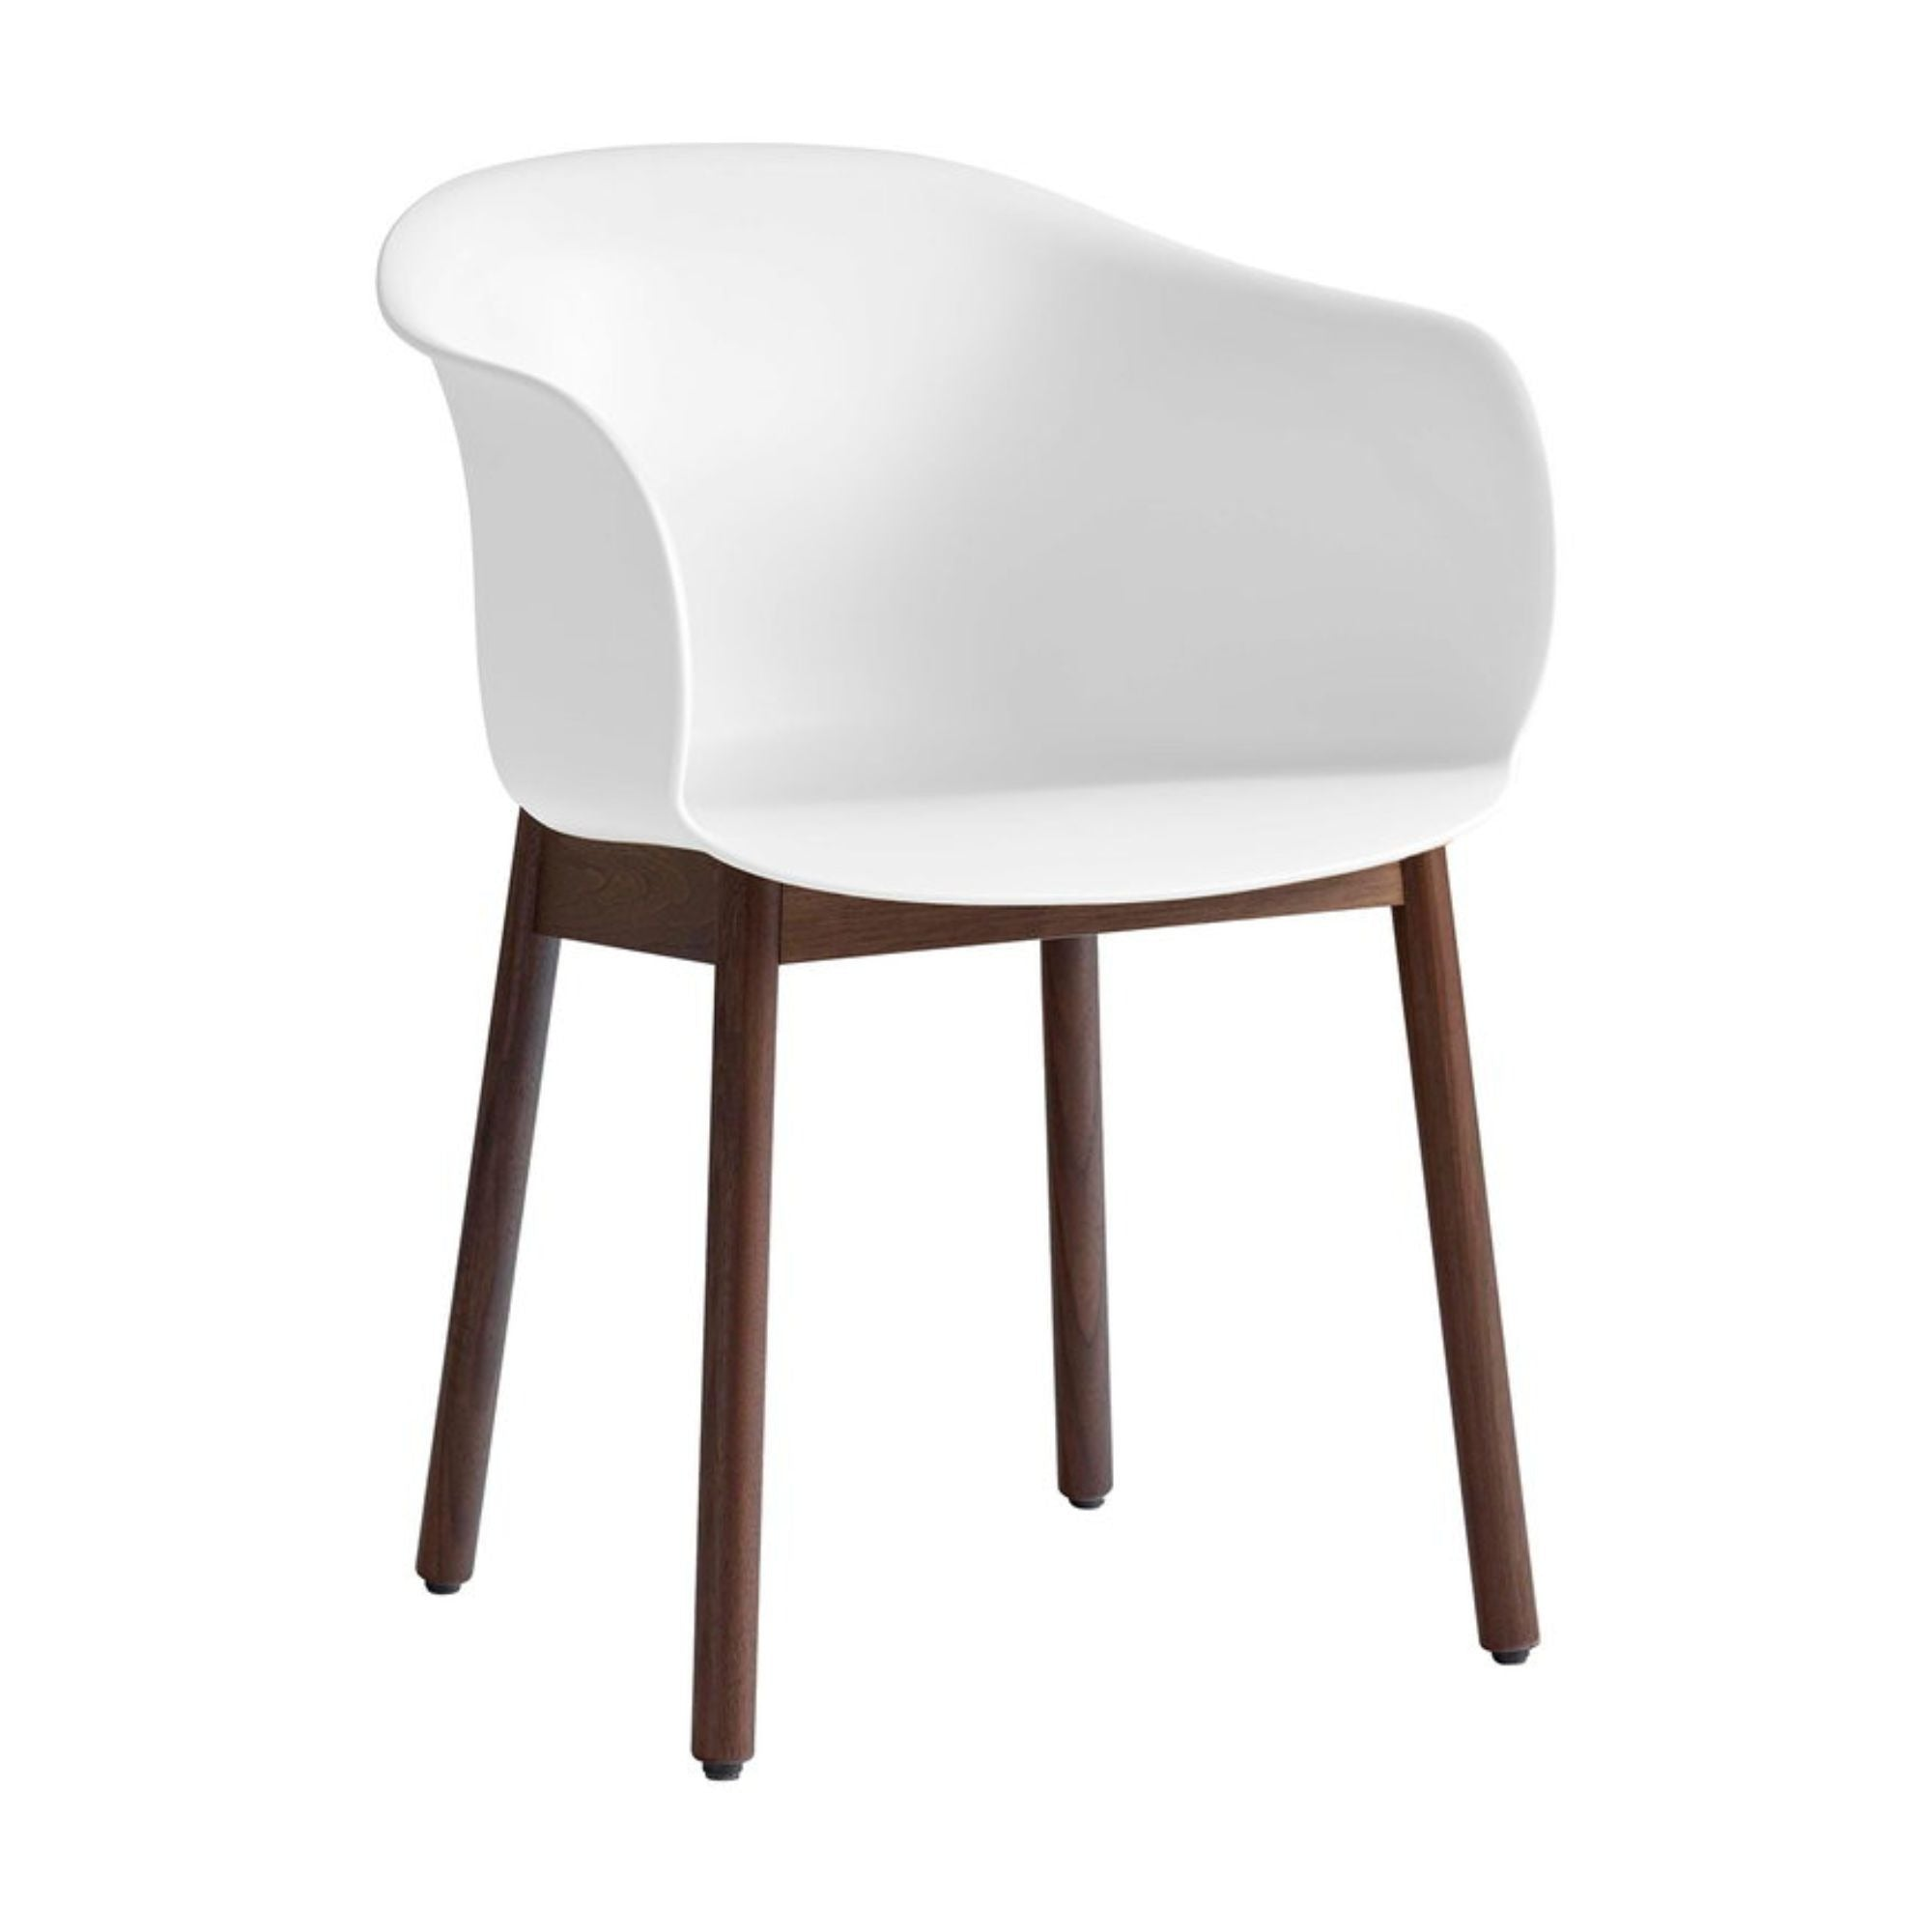 &Tradition JH30 Elefy Chair , White - Walnut